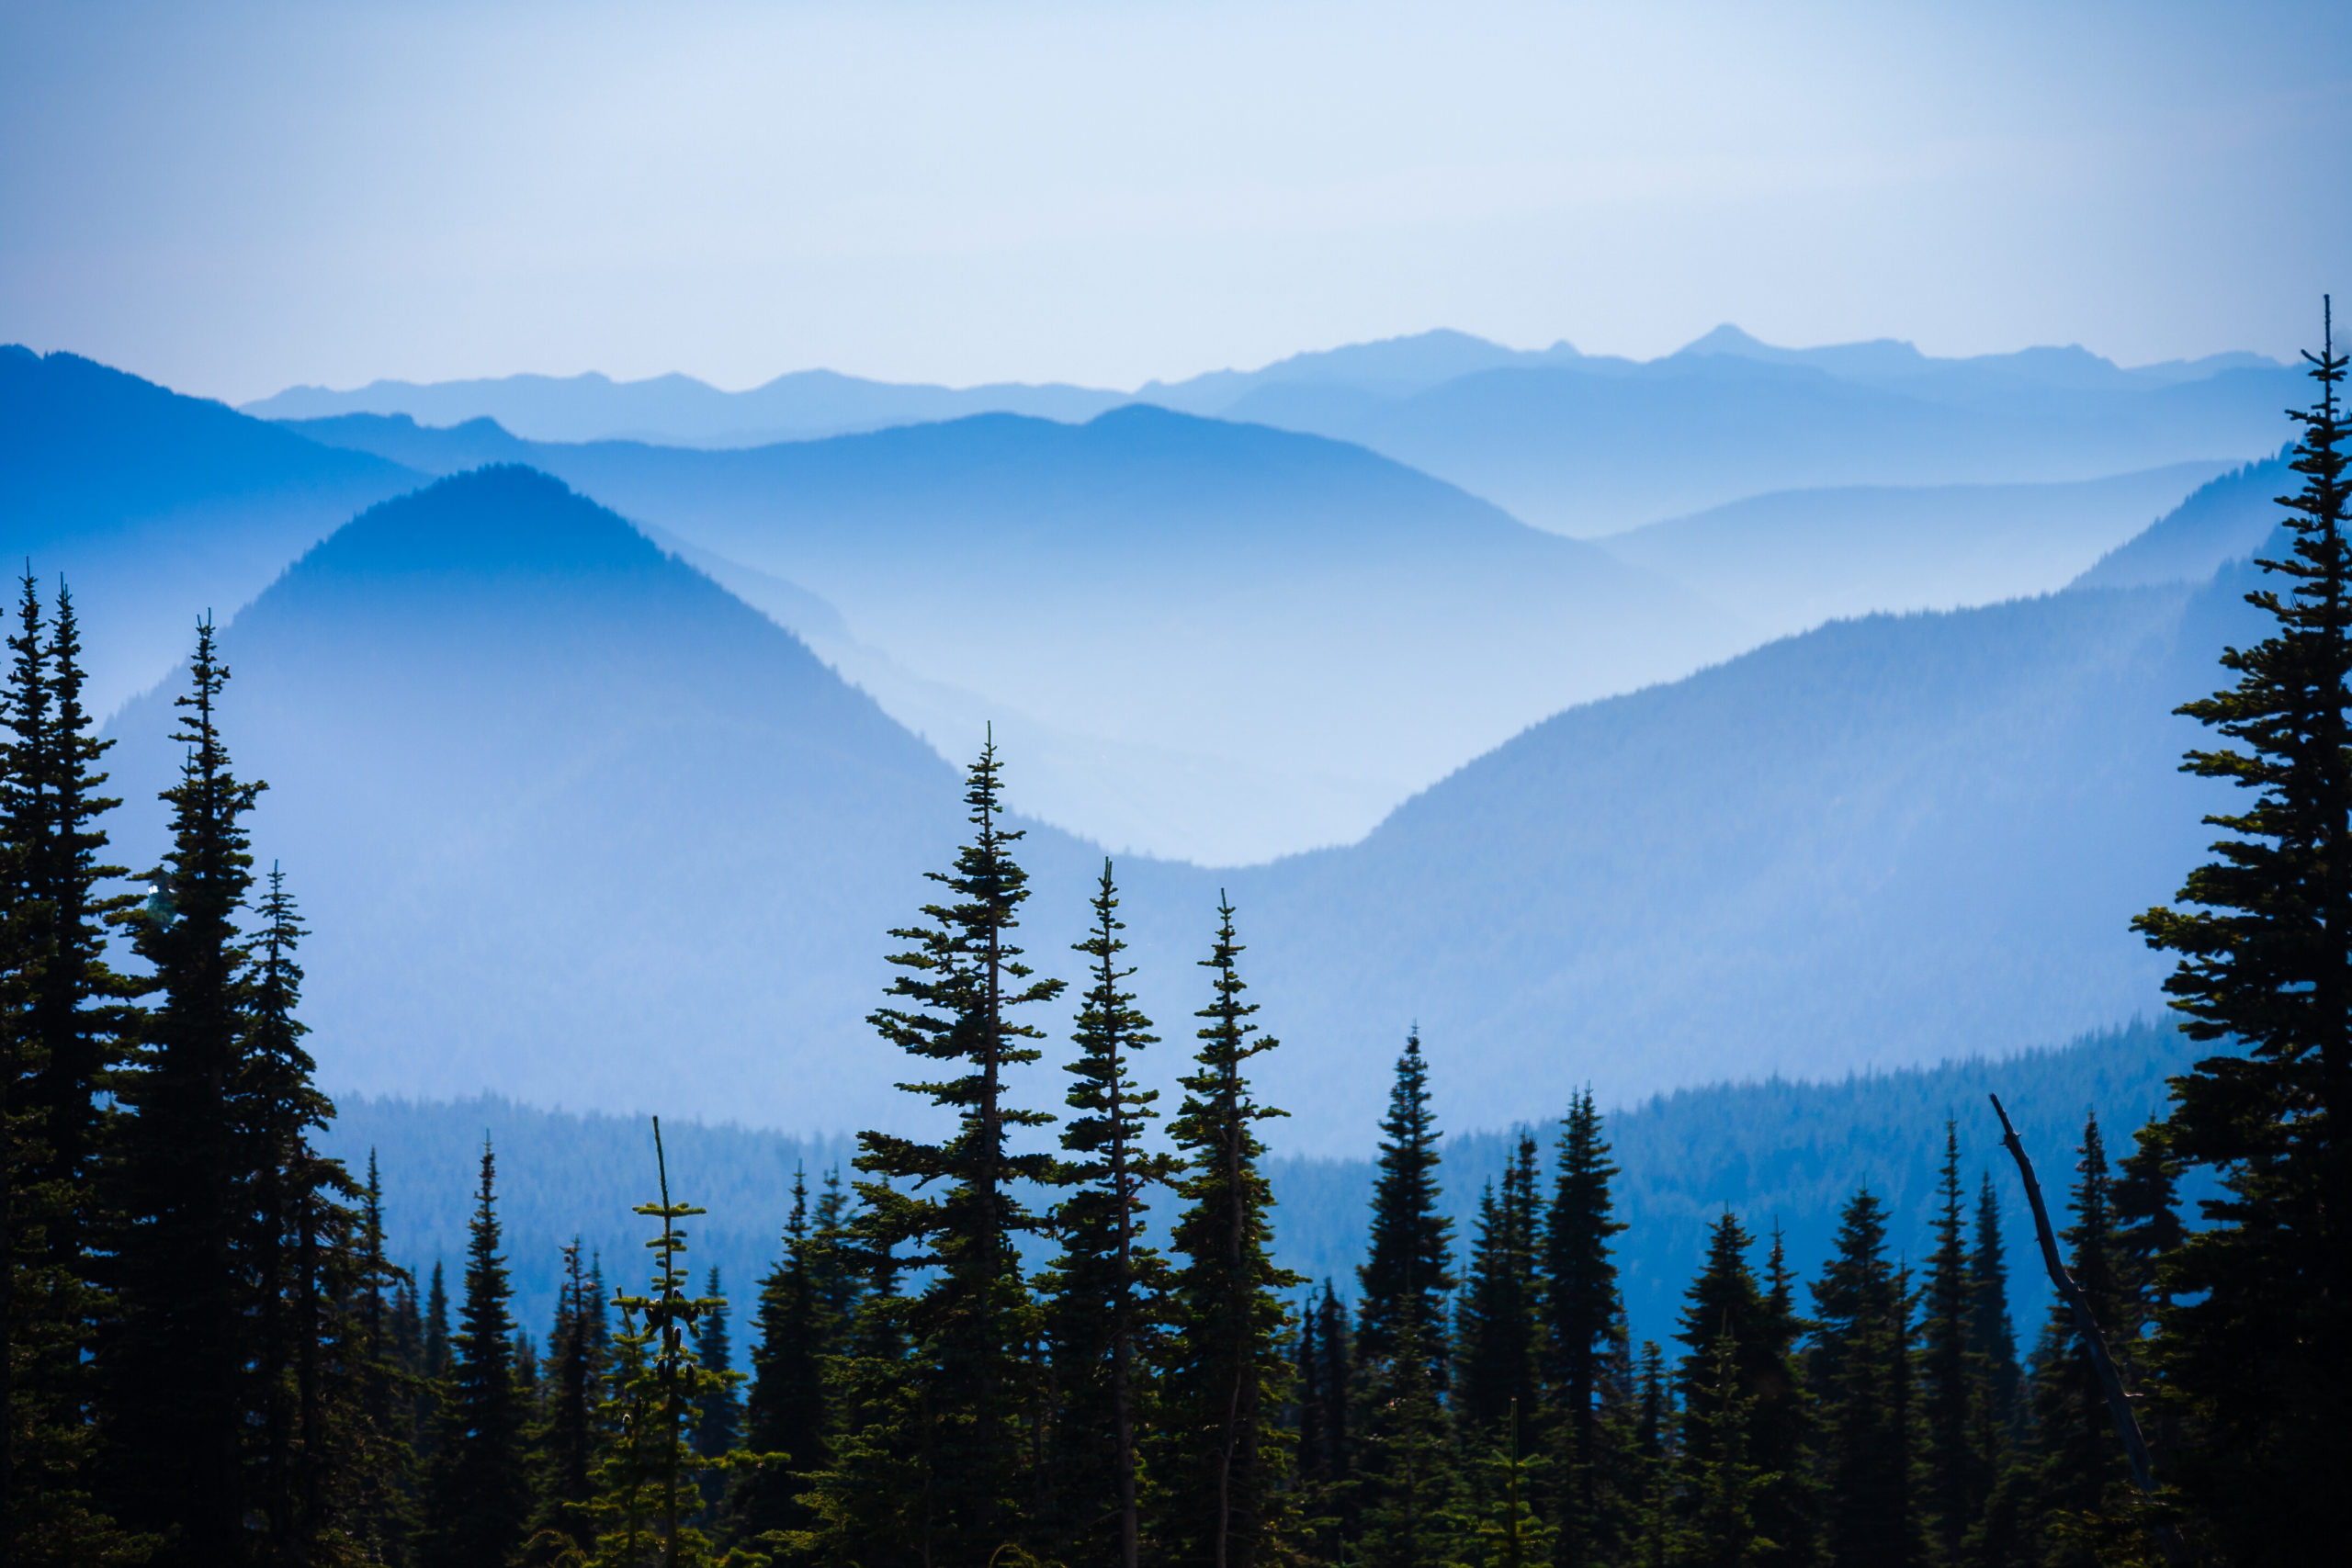 Hazy scenic view of mountain ranges in Mt. Rainier National Park.